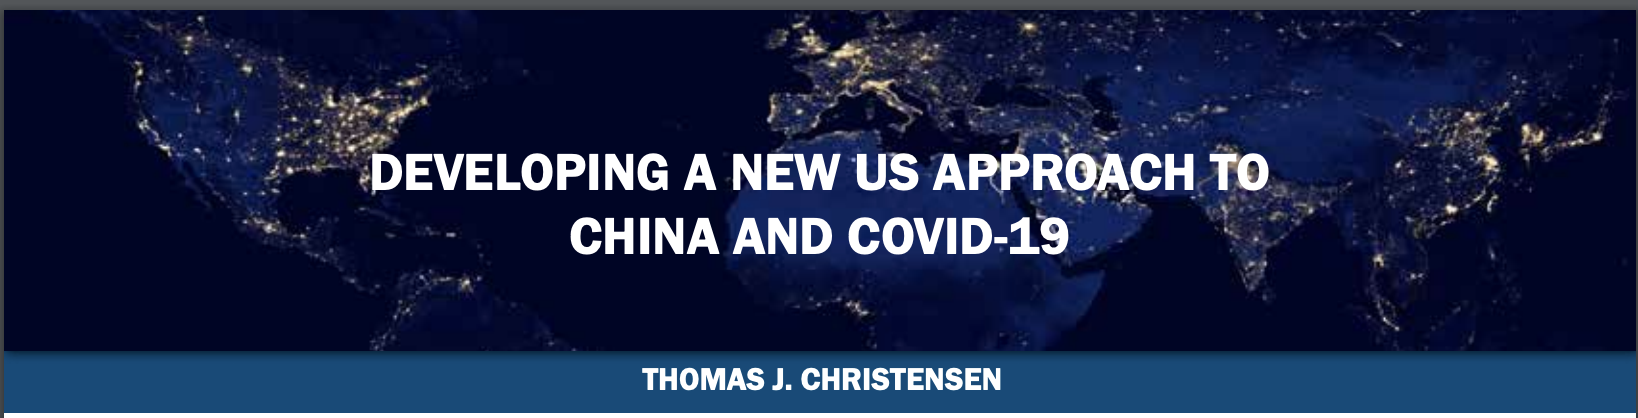 Developing a new US approach to China and COVID-19